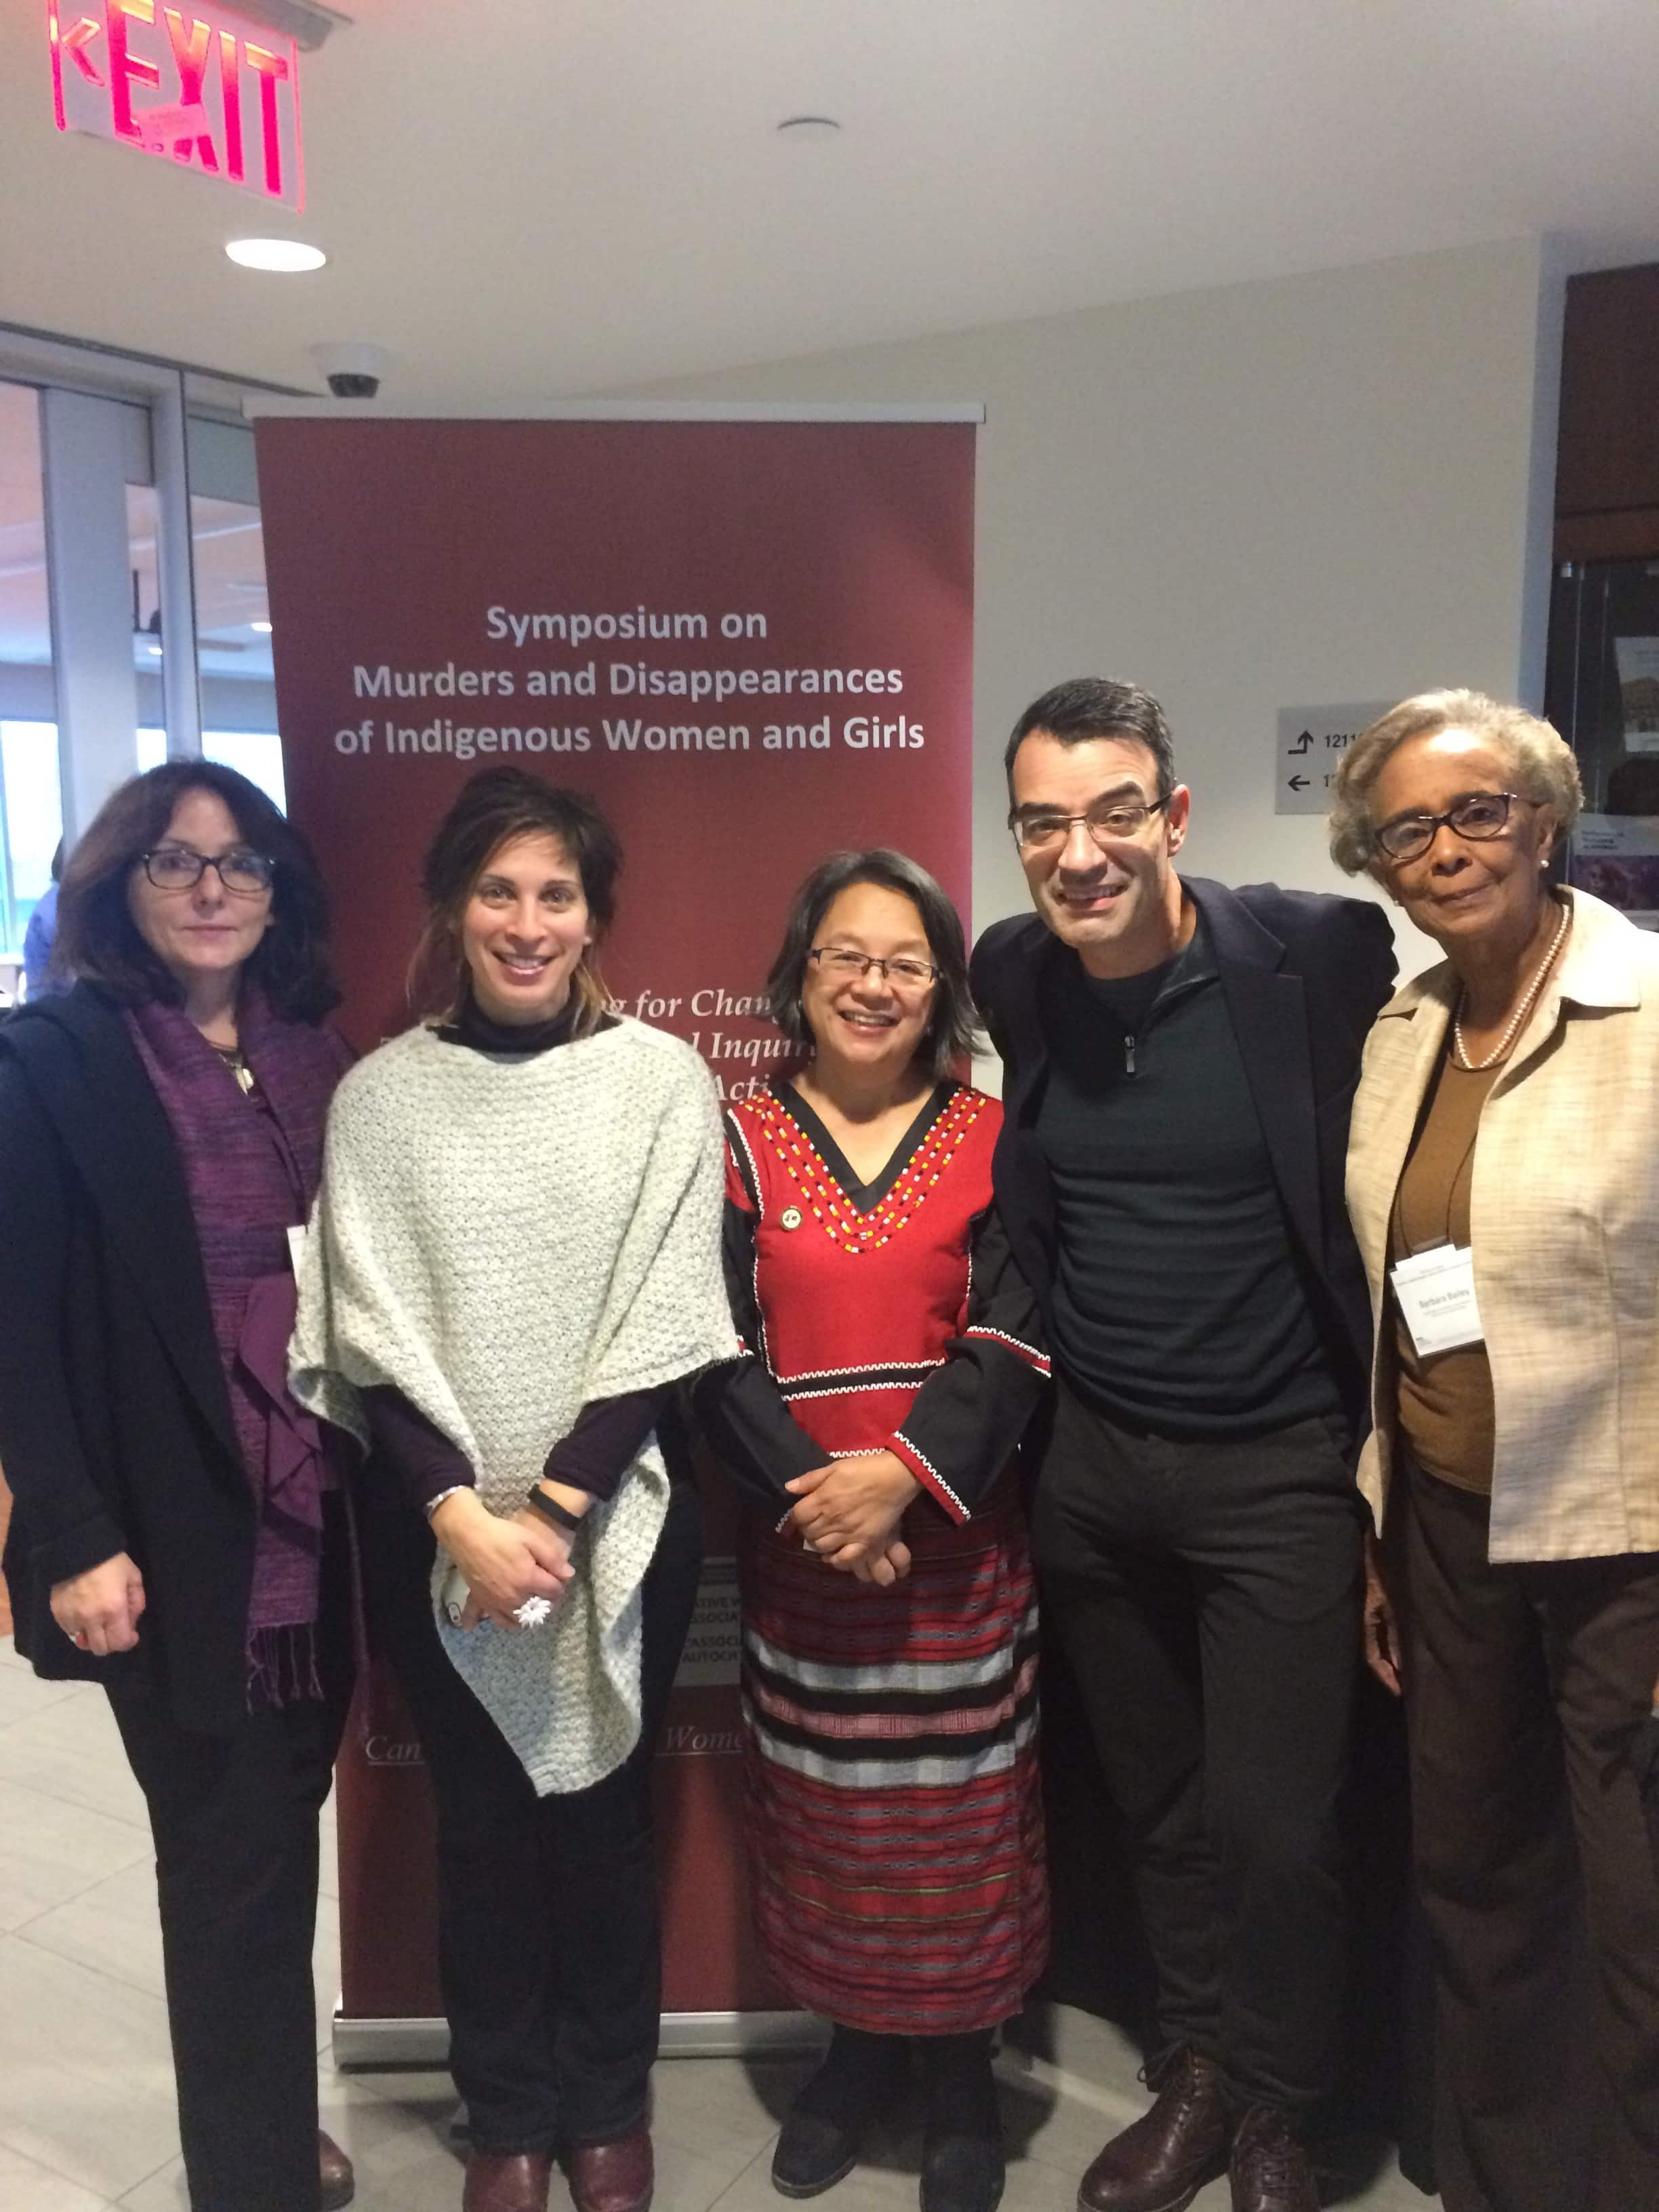 """United Nations and Inter-American Commission representatives at the Symposium, """"Planning for Change: Towards a National Inquiry and An Effective National Action Plan"""", Ottawa, January 30-31, 2016. Left to right: UN Special Rapporteur on violence against women, its causes and consequences, Dubravka Šimonović; UN Special Rapporteur on the right to adequate housing, Leilani Farha; UN Special Rapporteur on the rights of Indigenous peoples, Victoria Tauli-Corpuz; Chair of the Inter-American Commission on Human Rights and Rapporteur for Canada, James Cavallaro; and Vice-Chair of the UN Committee on the Elimination of Discrimination against Women (CEDAW), Barbara Bailey (absent: Member of the CEDAW Committee and Chair of the Working Group on Follow-up to Inquiries, Ruth Halperin-Kaddari). (Photo Credit: Lara Koerner Yeo)"""